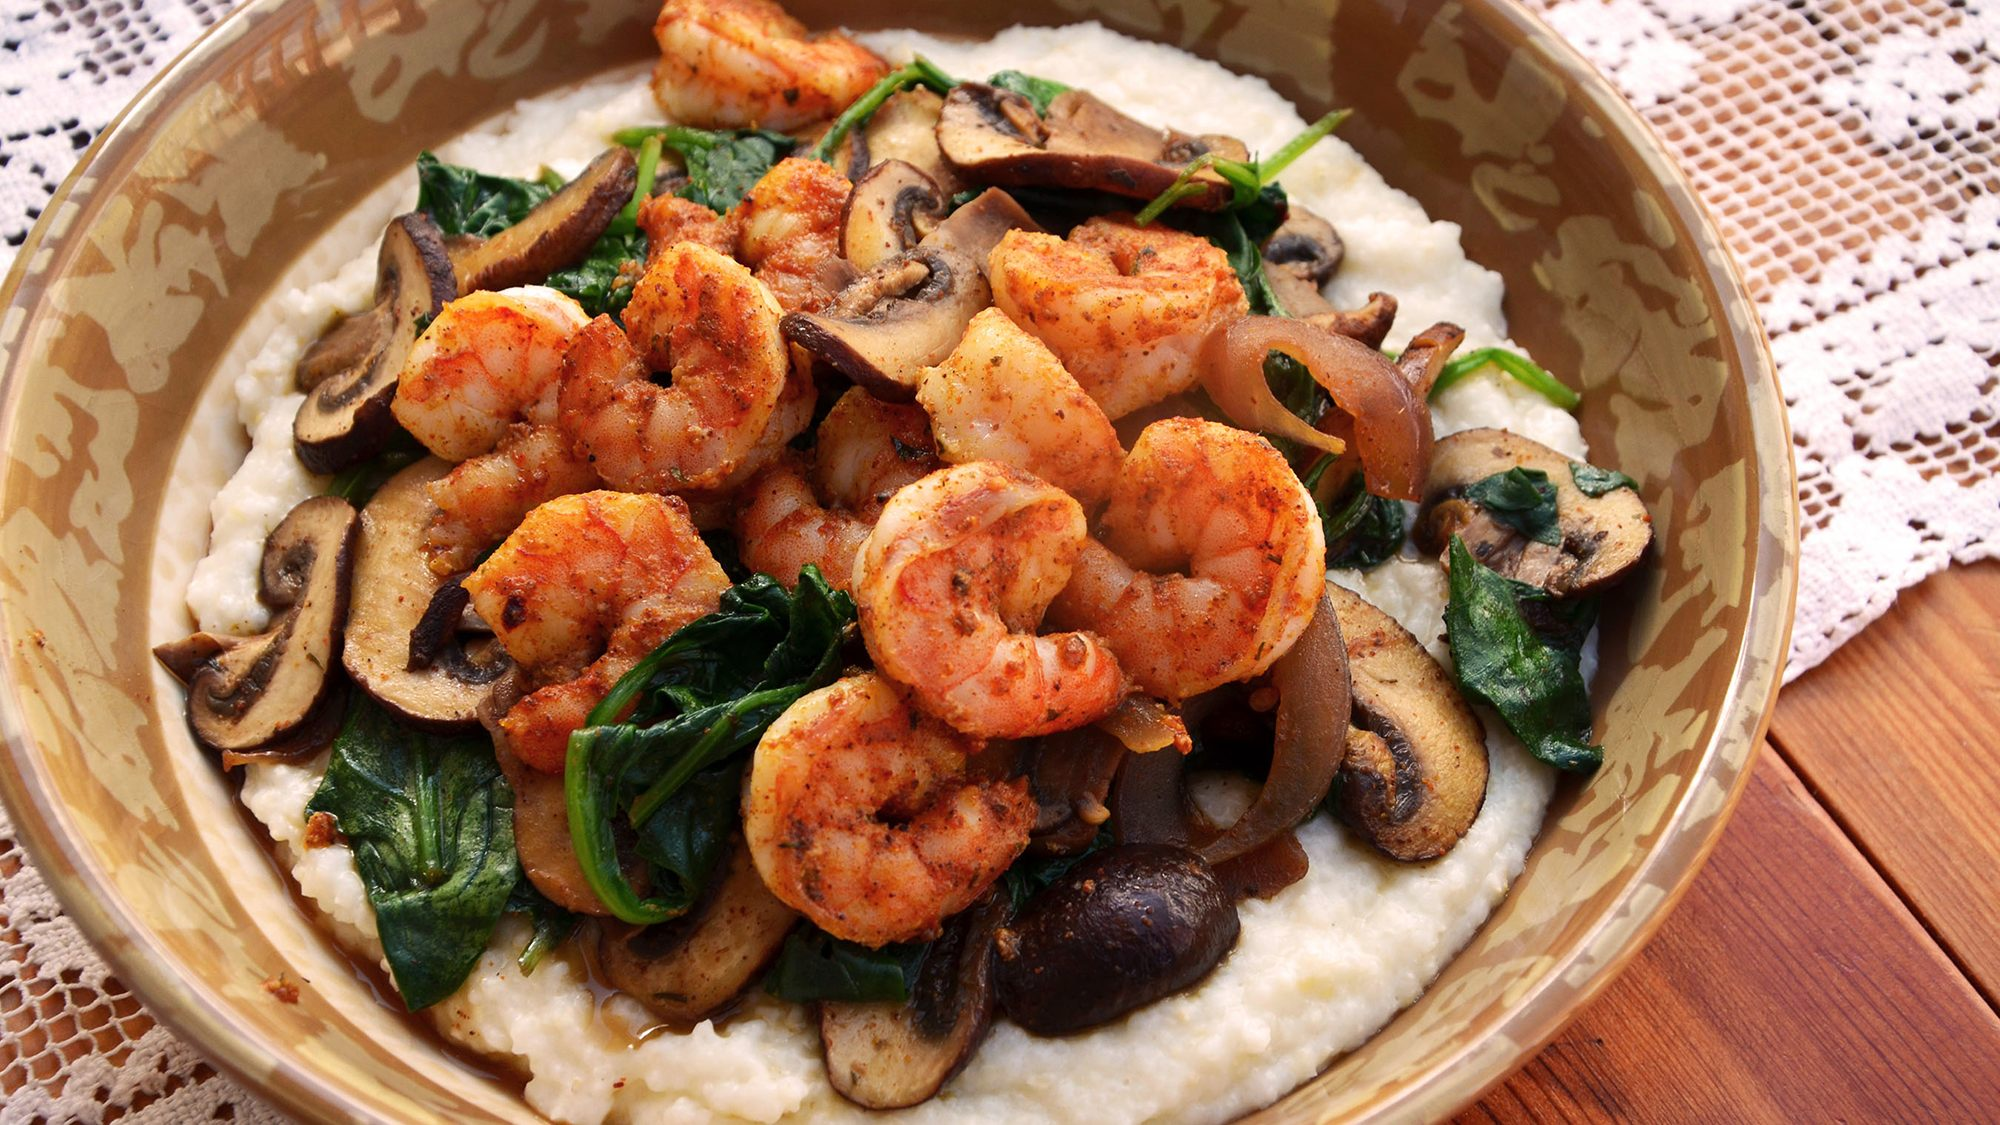 McCormick Gourmet Curried Shrimp with Wild Mushrooms and Grits